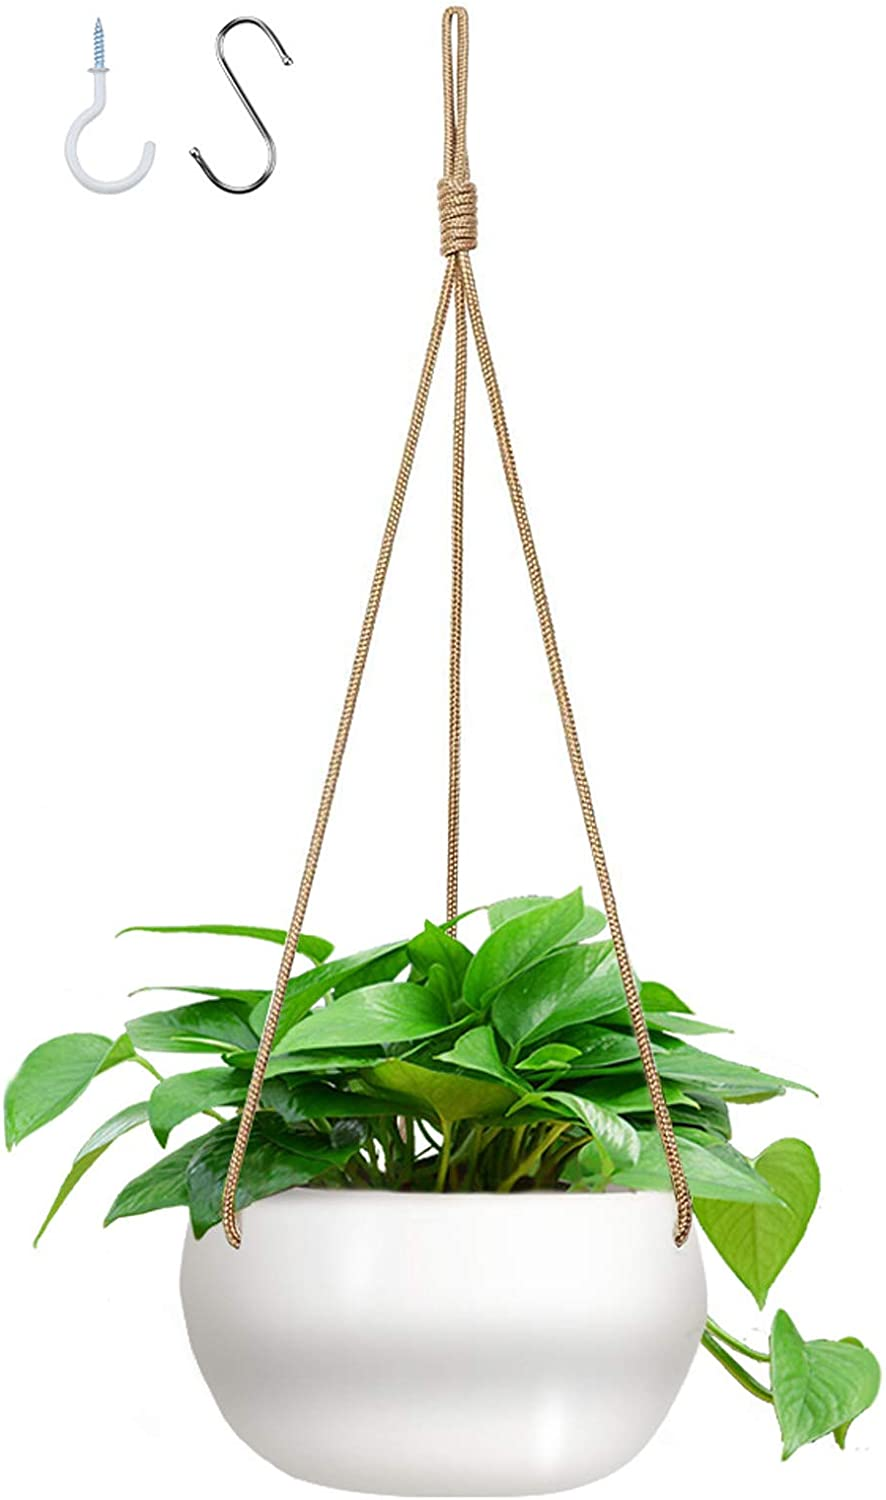 GROWNEER 7 Inches Ceramic Hanging Planter with 2 Hooks, White Porcelain Wall Hanging Plant Holder Flower Pot with Nylon Rope for Home Decoration, Gift, Garden, Indoor Outdoor Use